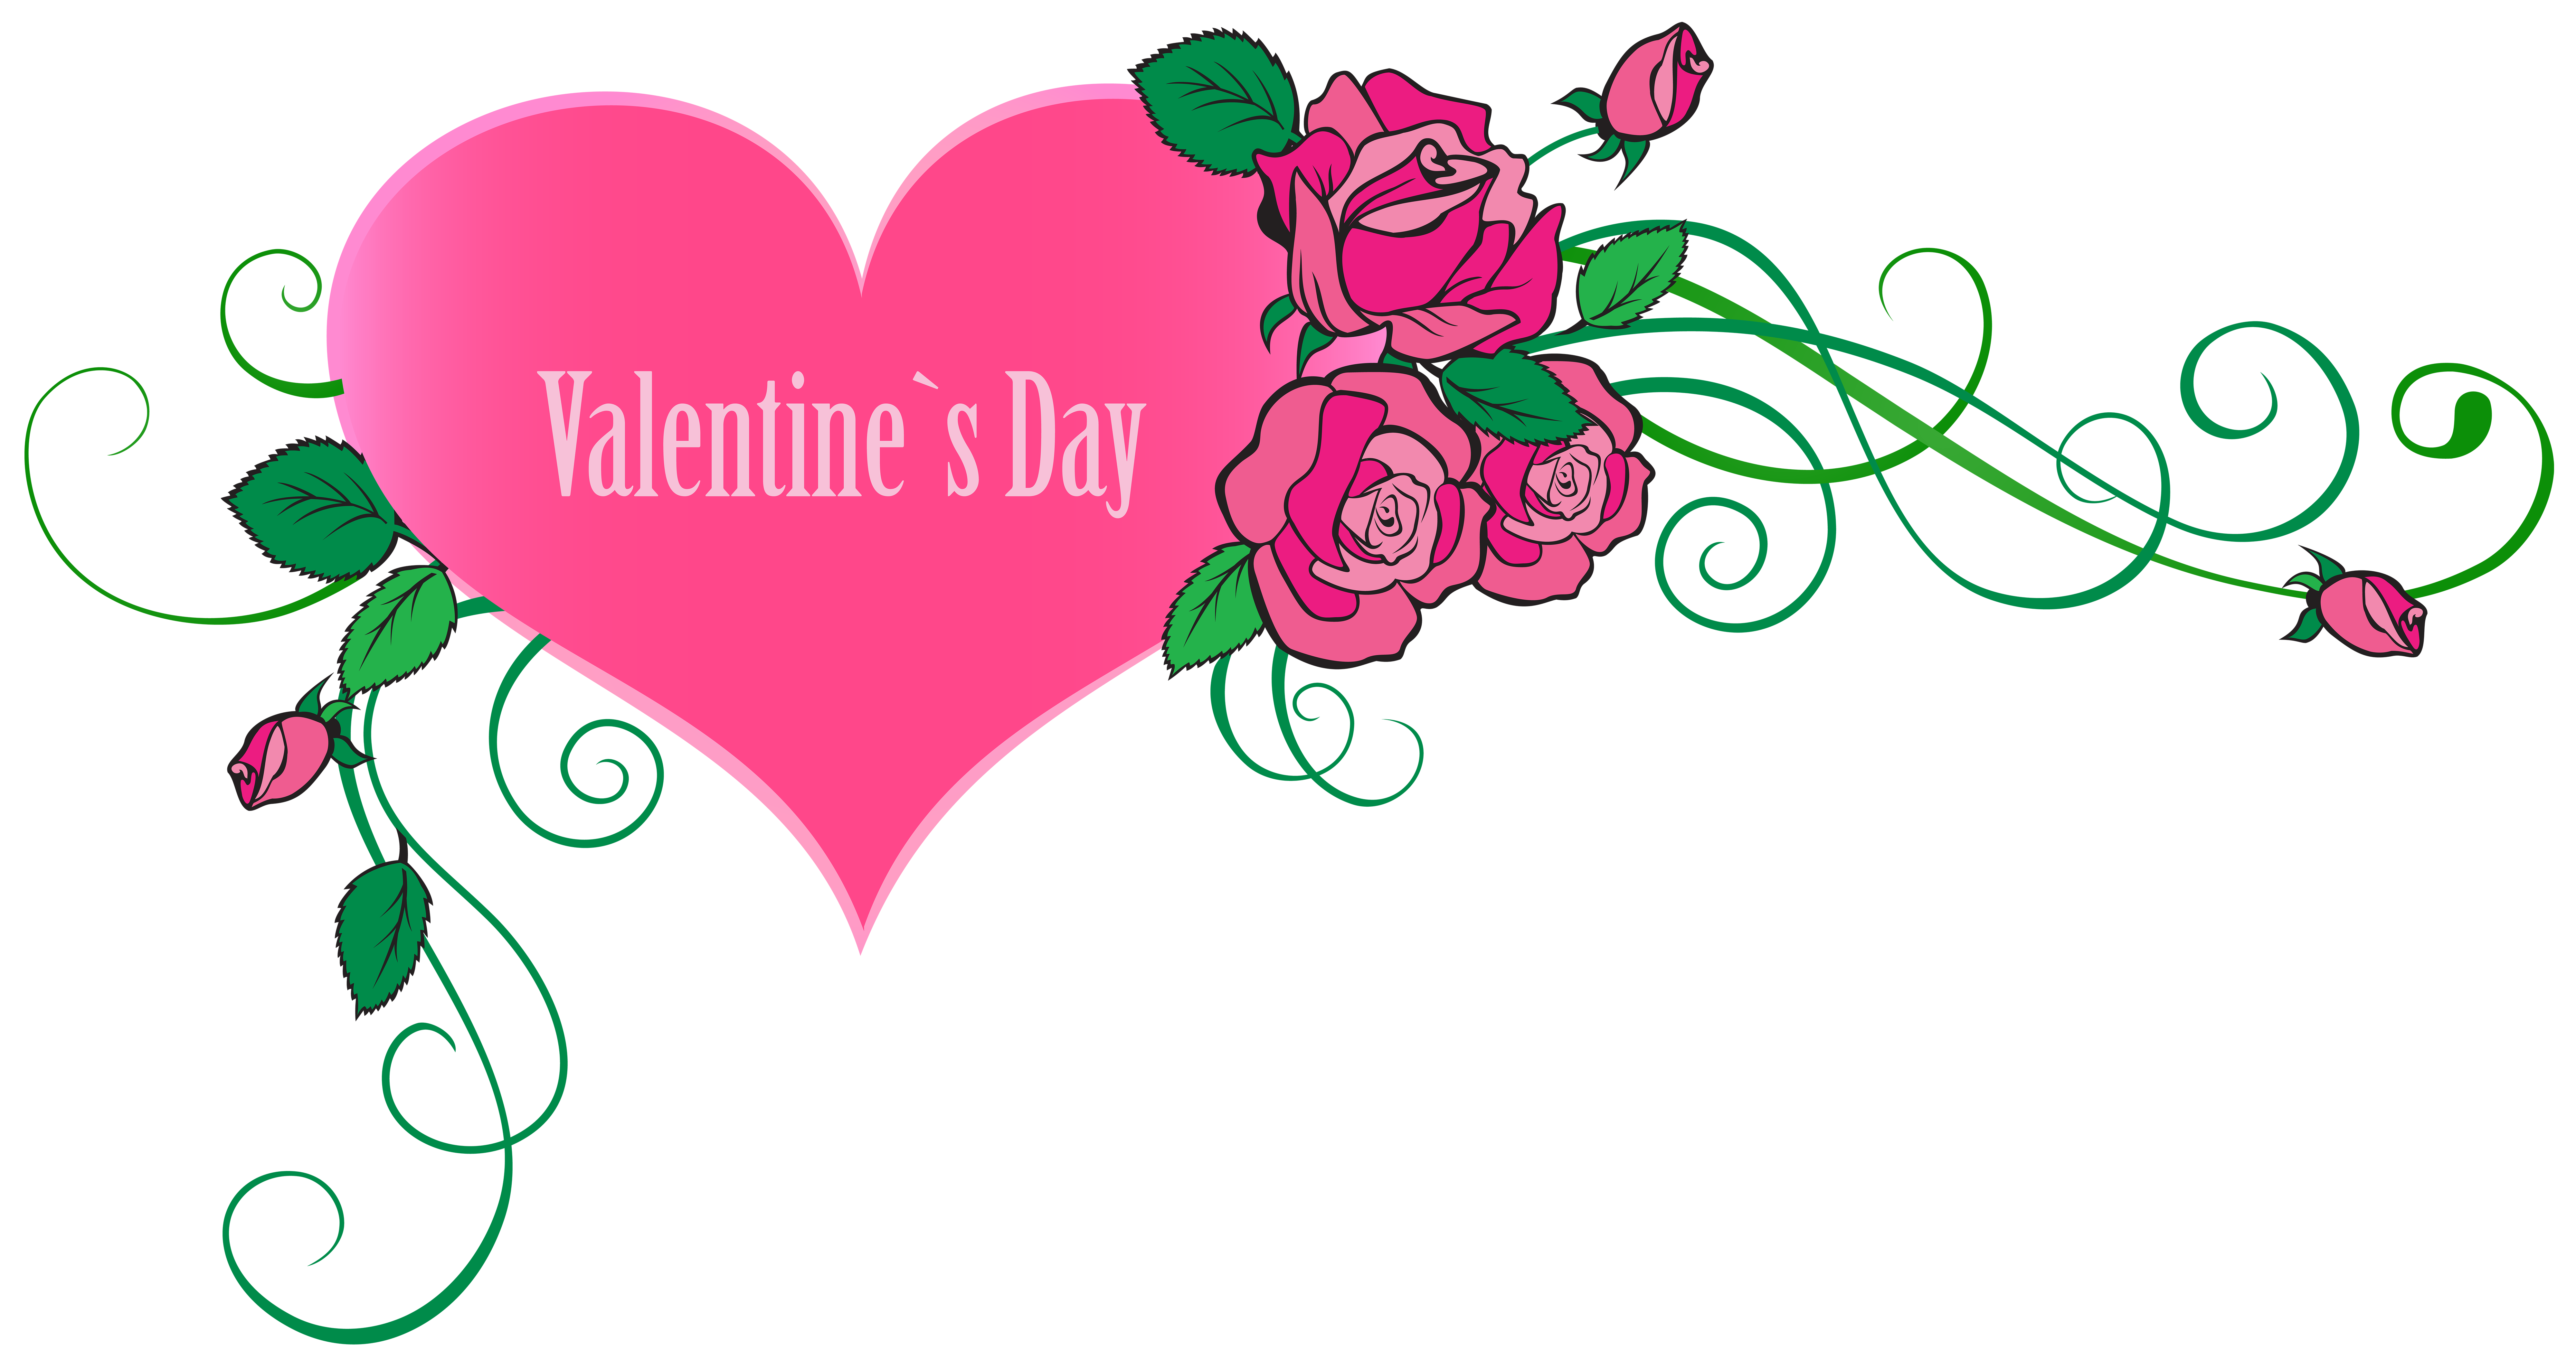 Clipart hearts and roses free download Happy Valentine's Day Heart with Roses Transparent PNG Clip Art Image free download